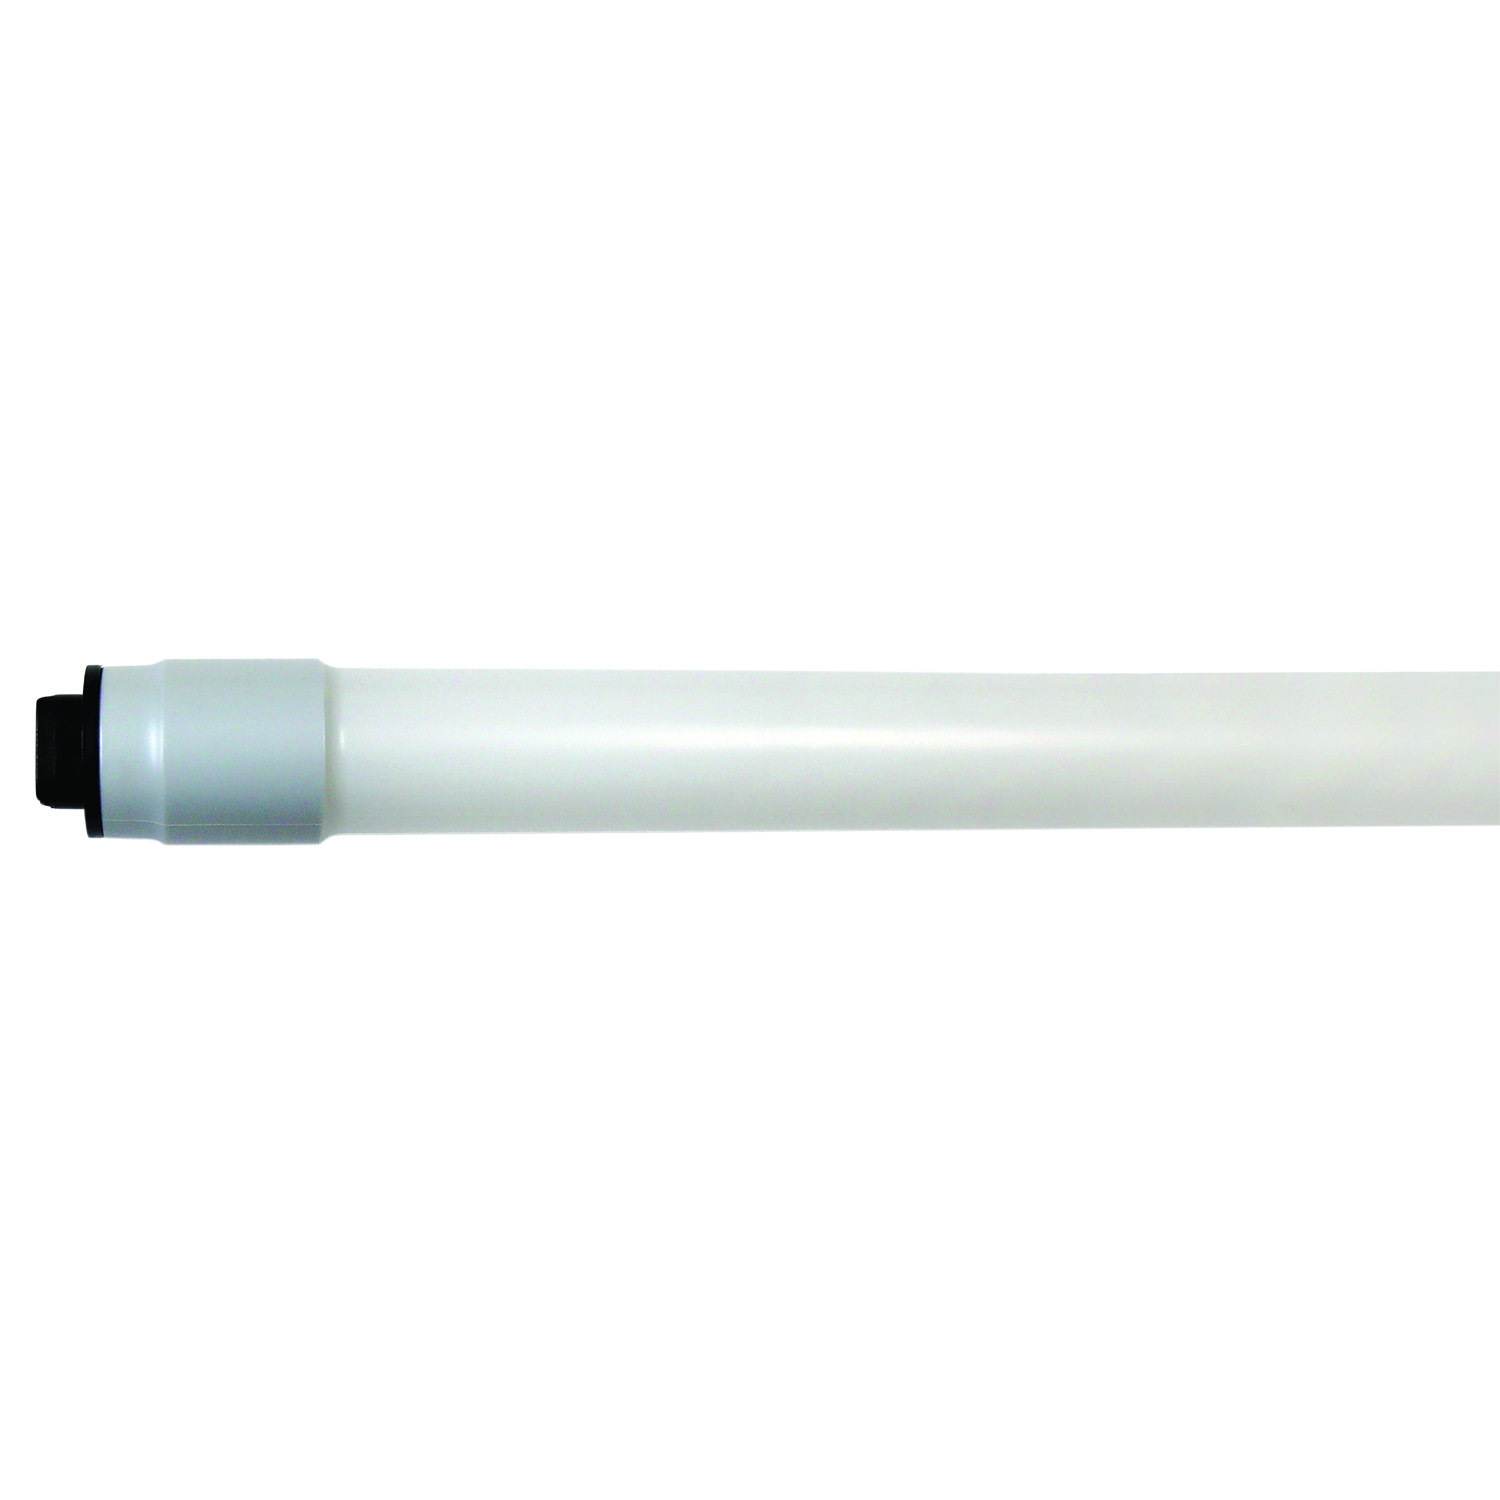 "T896FR42/840/BYP2/RDC/LED 82877 LED T8 96"" 42W 4000K Double-End Bypass Non-Dimmable R17d ProLED"